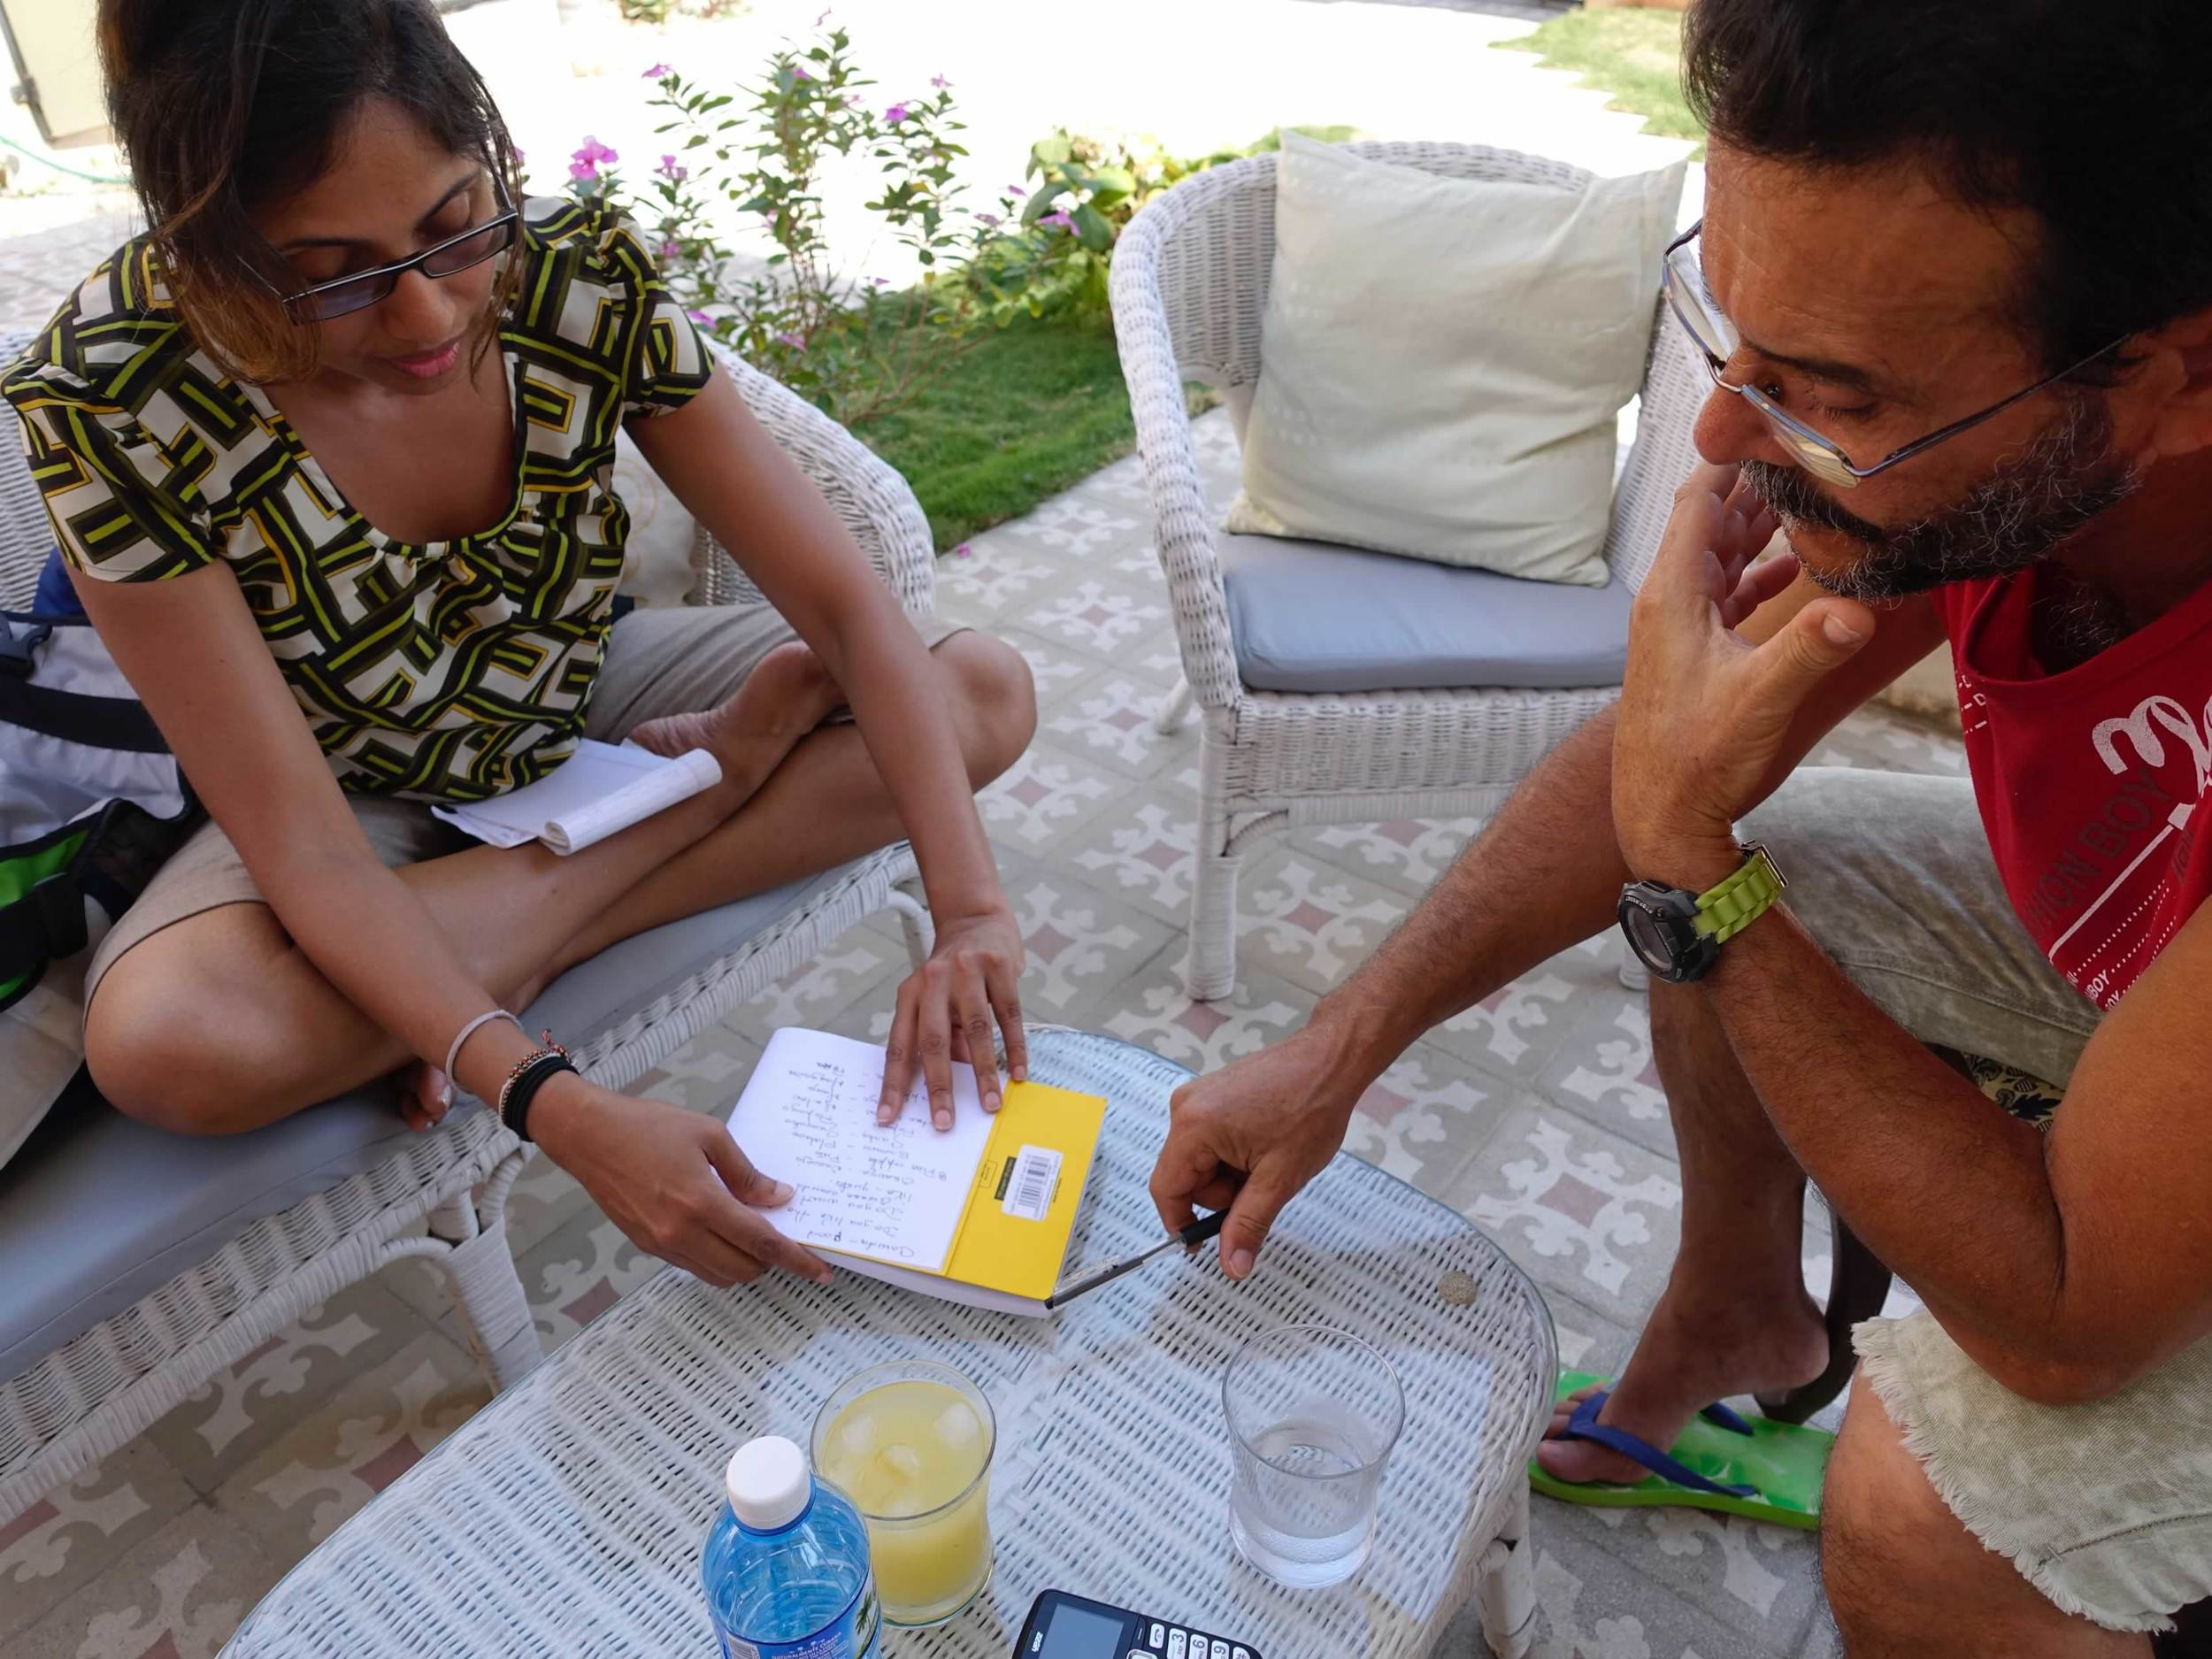 UBELONGER, Tharangi (l) works with a Cuban man, Rene to improve his English, while she polishes her Spanish skills.